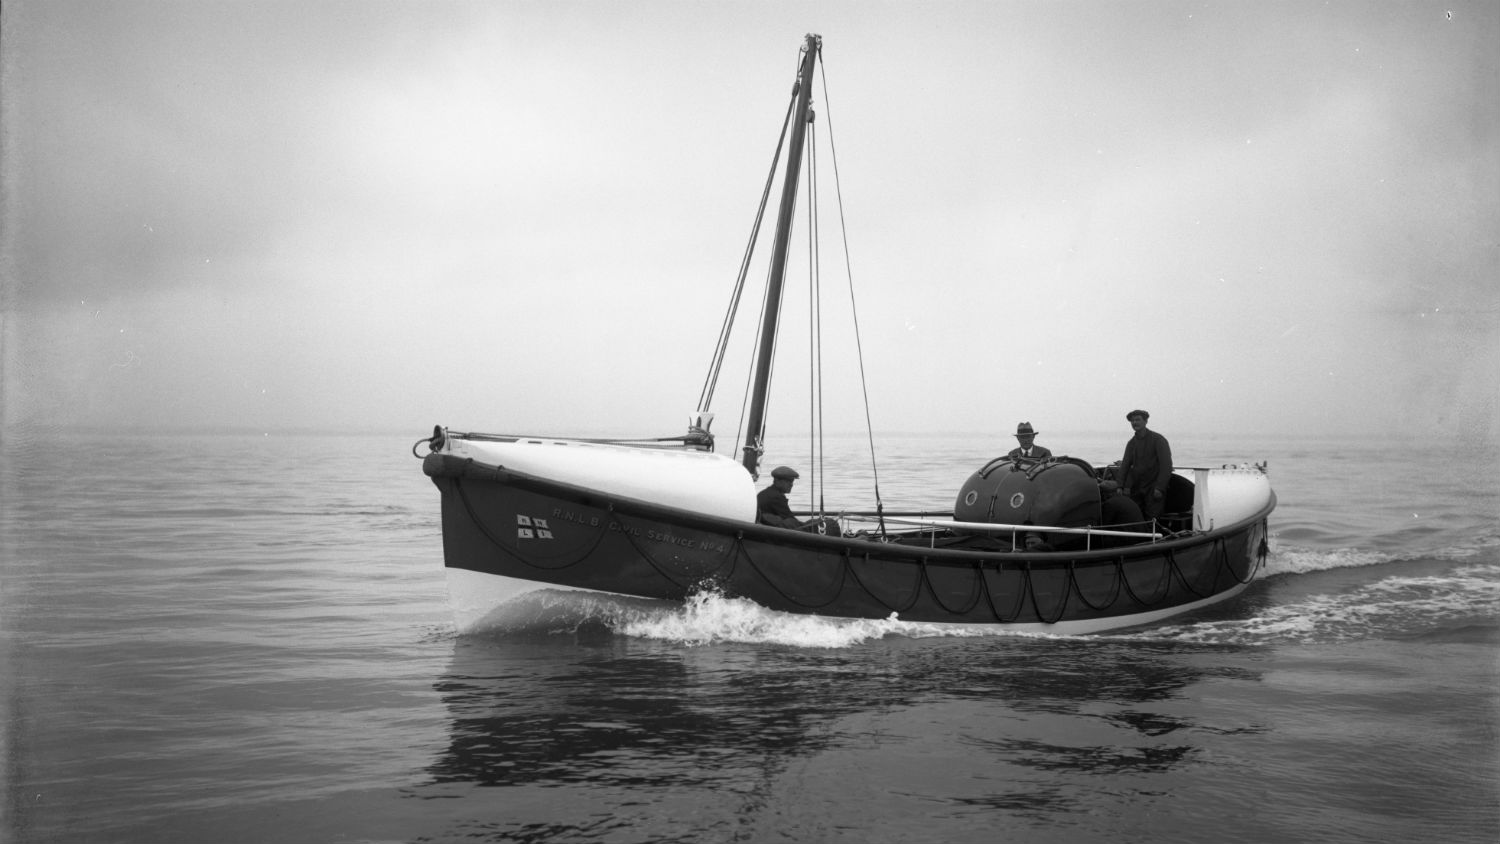 Black and white image of Whitehills lifeboat, Civil Service No.4, while on trials